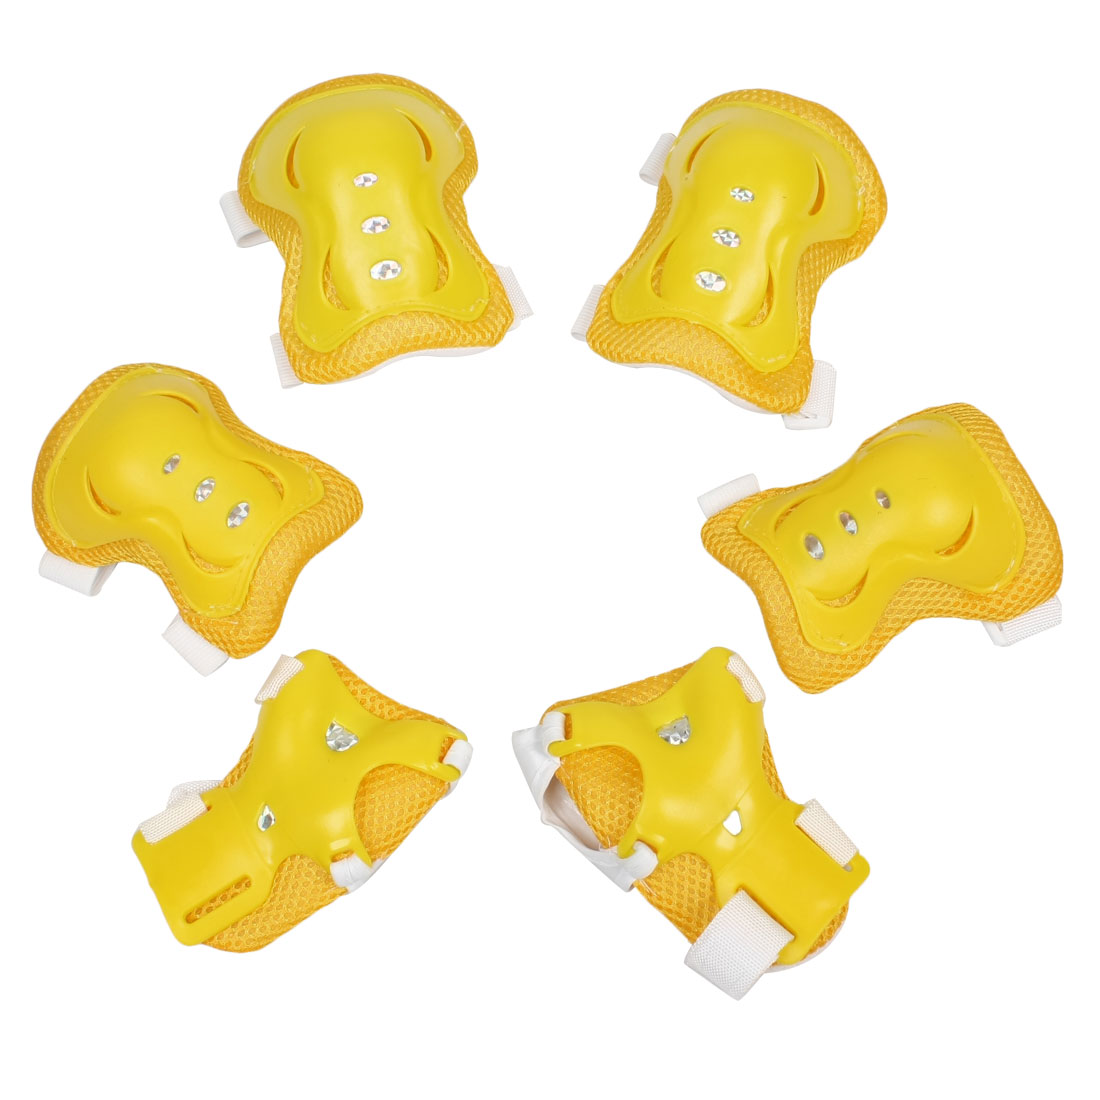 Set 6 in 1 Children Skating Palm Elbow Knee Support Guard Protector Yellow White